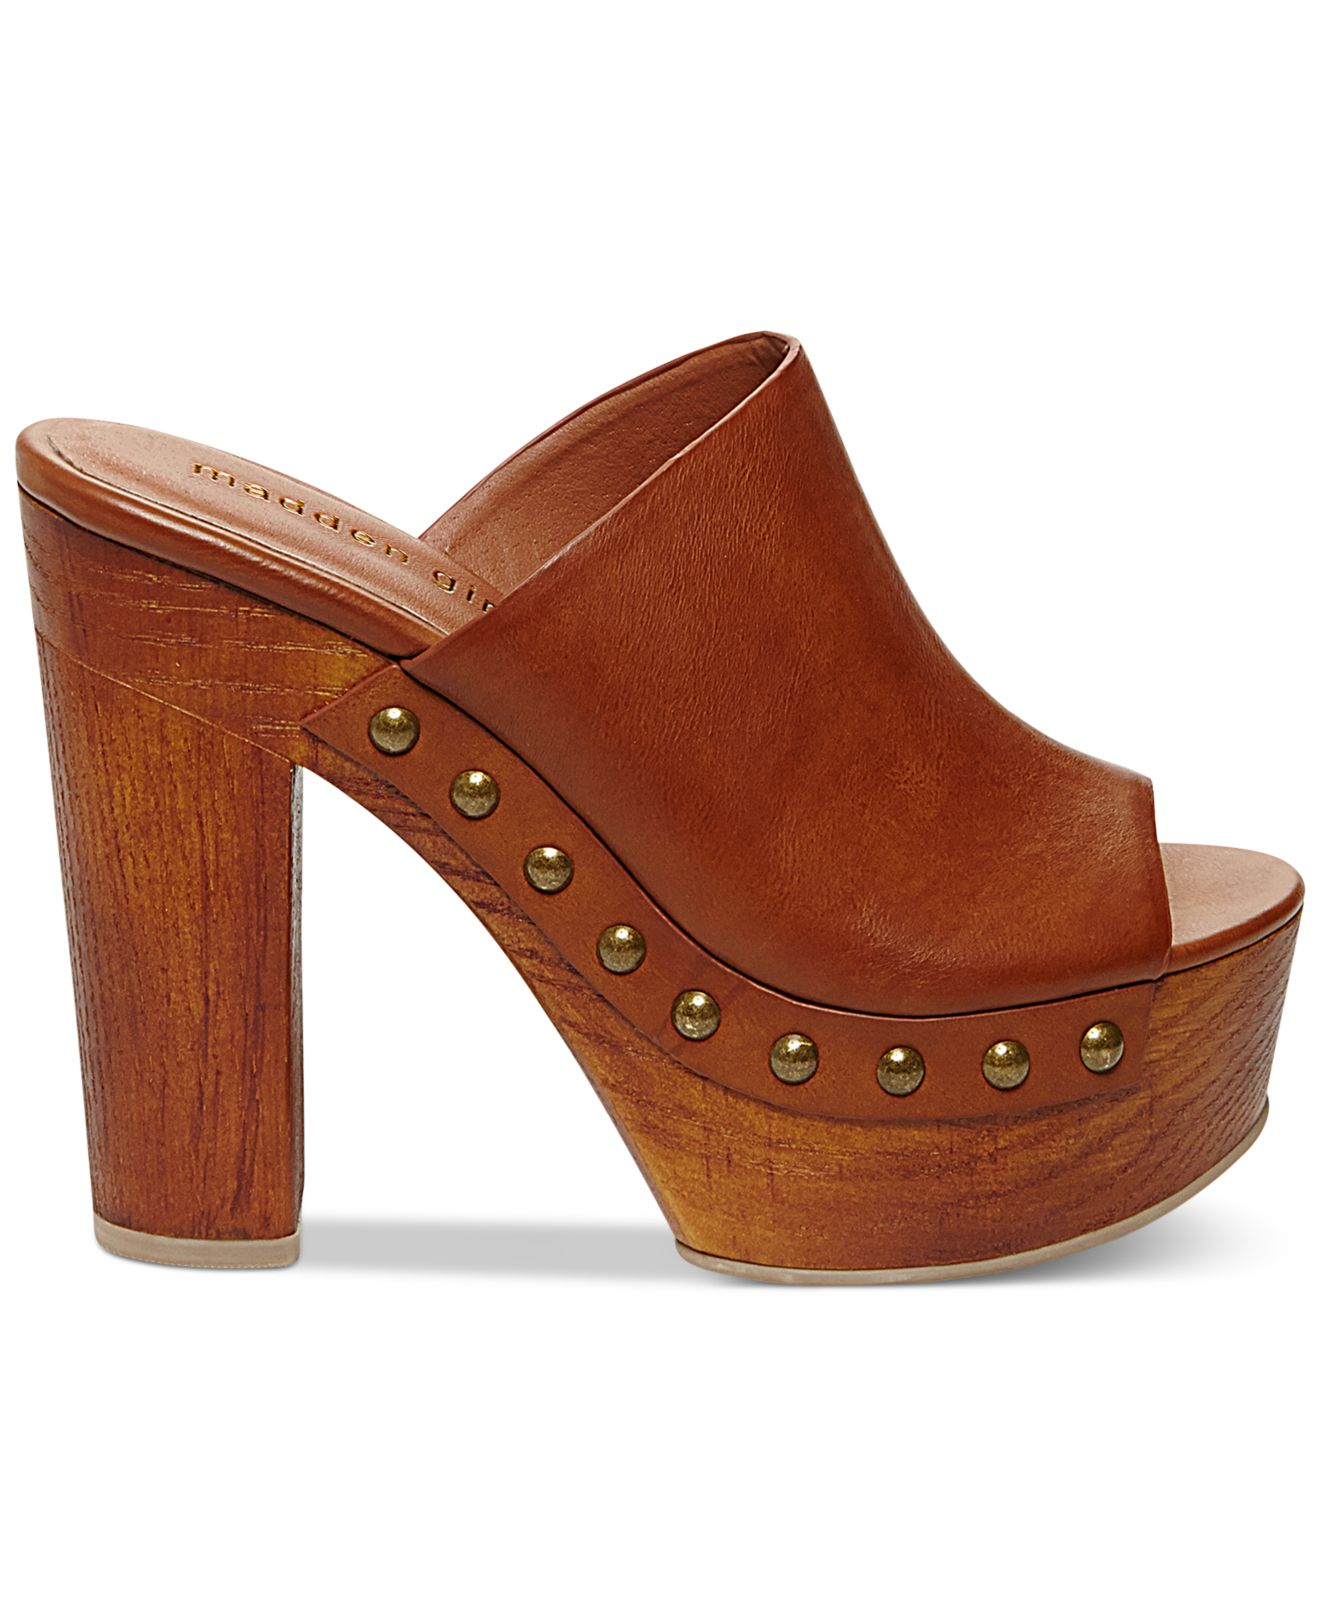 ce14ea179a3 Madden Girl Brown Merry Wooden Platform Mules